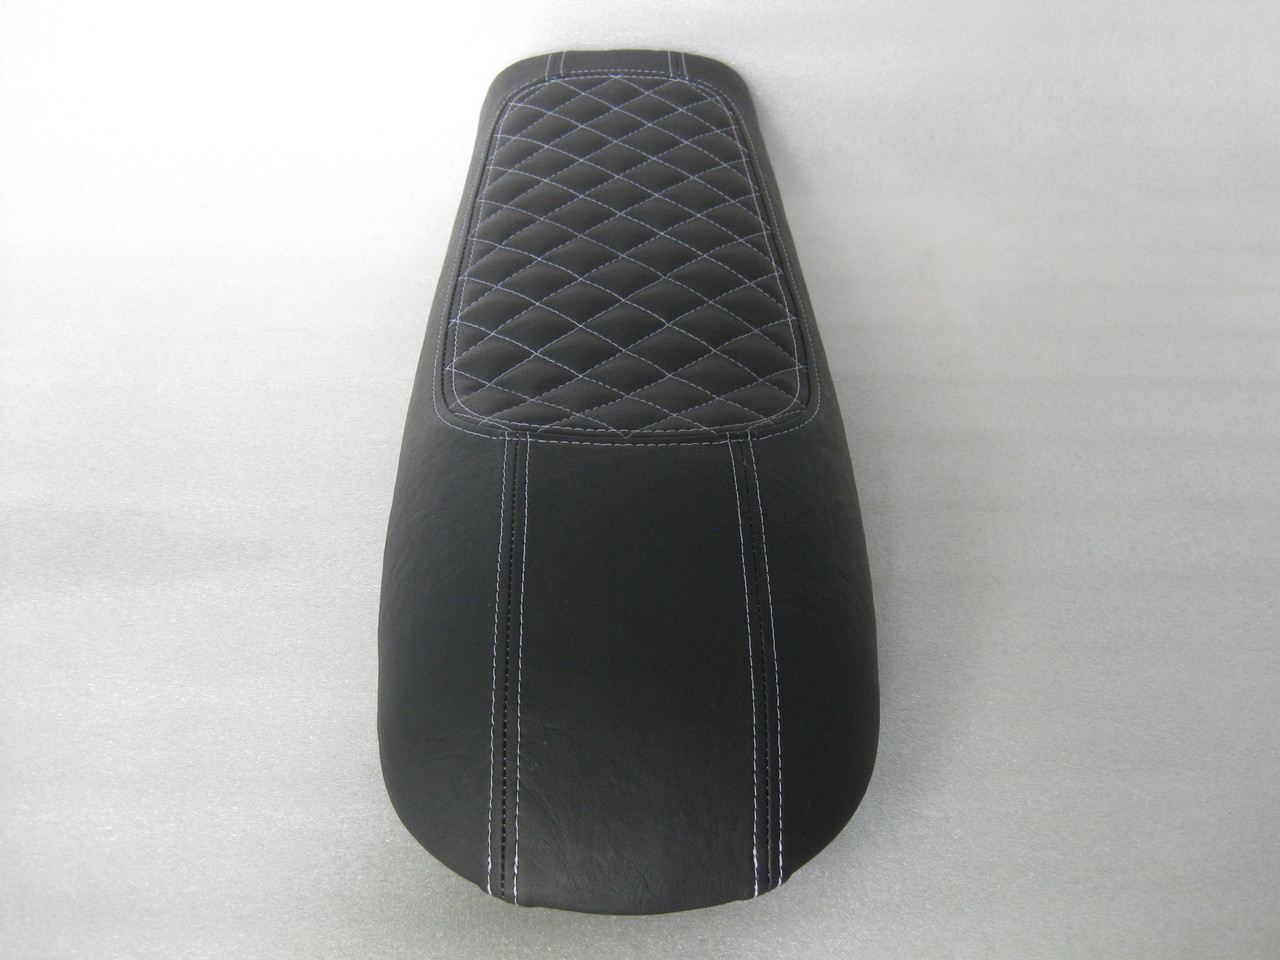 1979 - 1982 Honda CX500 Custom cafe racer complete seat (Wider Front End) - #4255 Style C